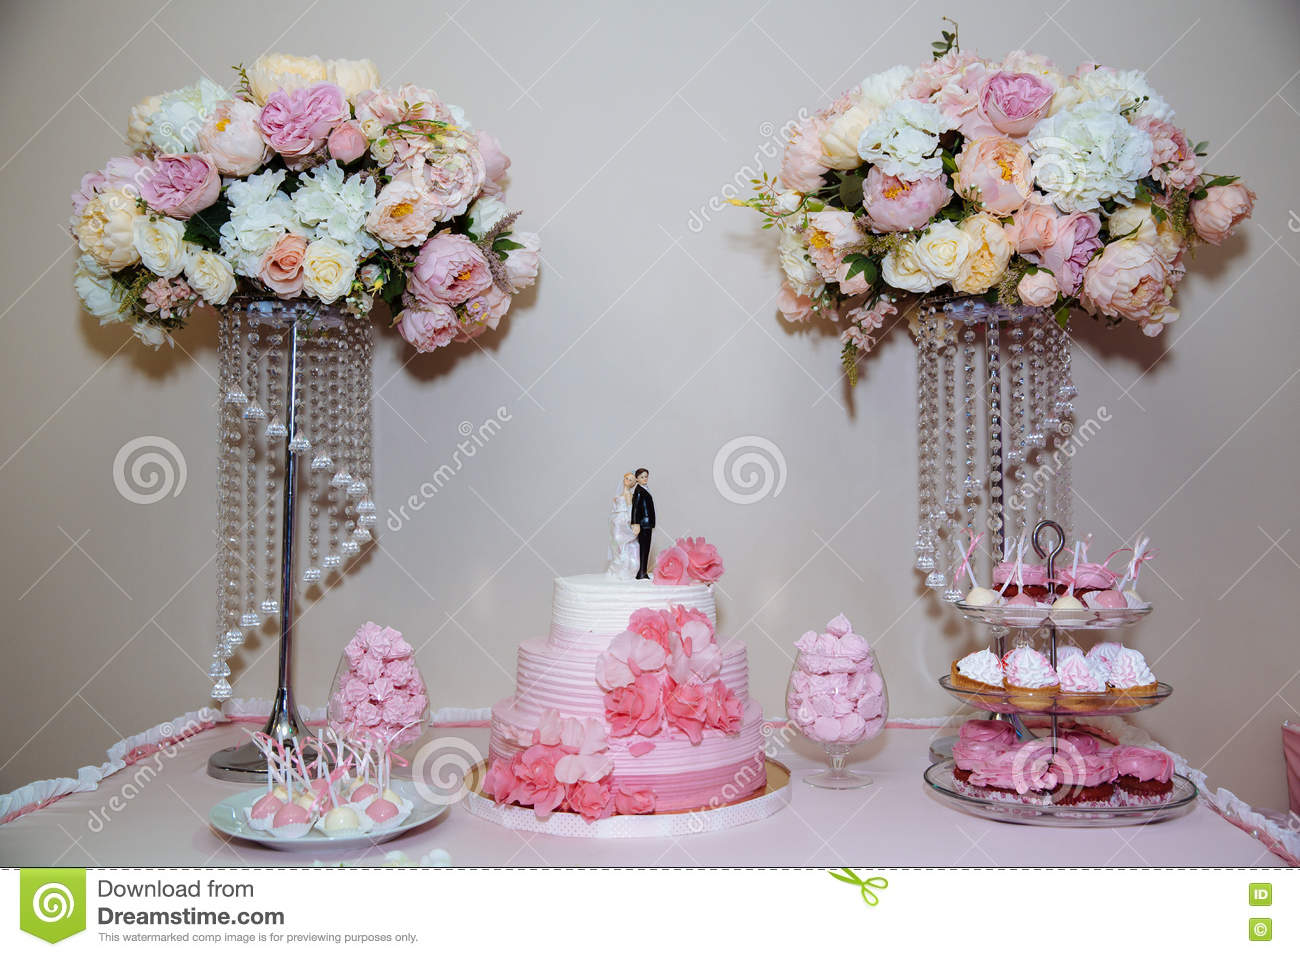 wedding cake candy bar marshmallow on the table in a vase. Black Bedroom Furniture Sets. Home Design Ideas